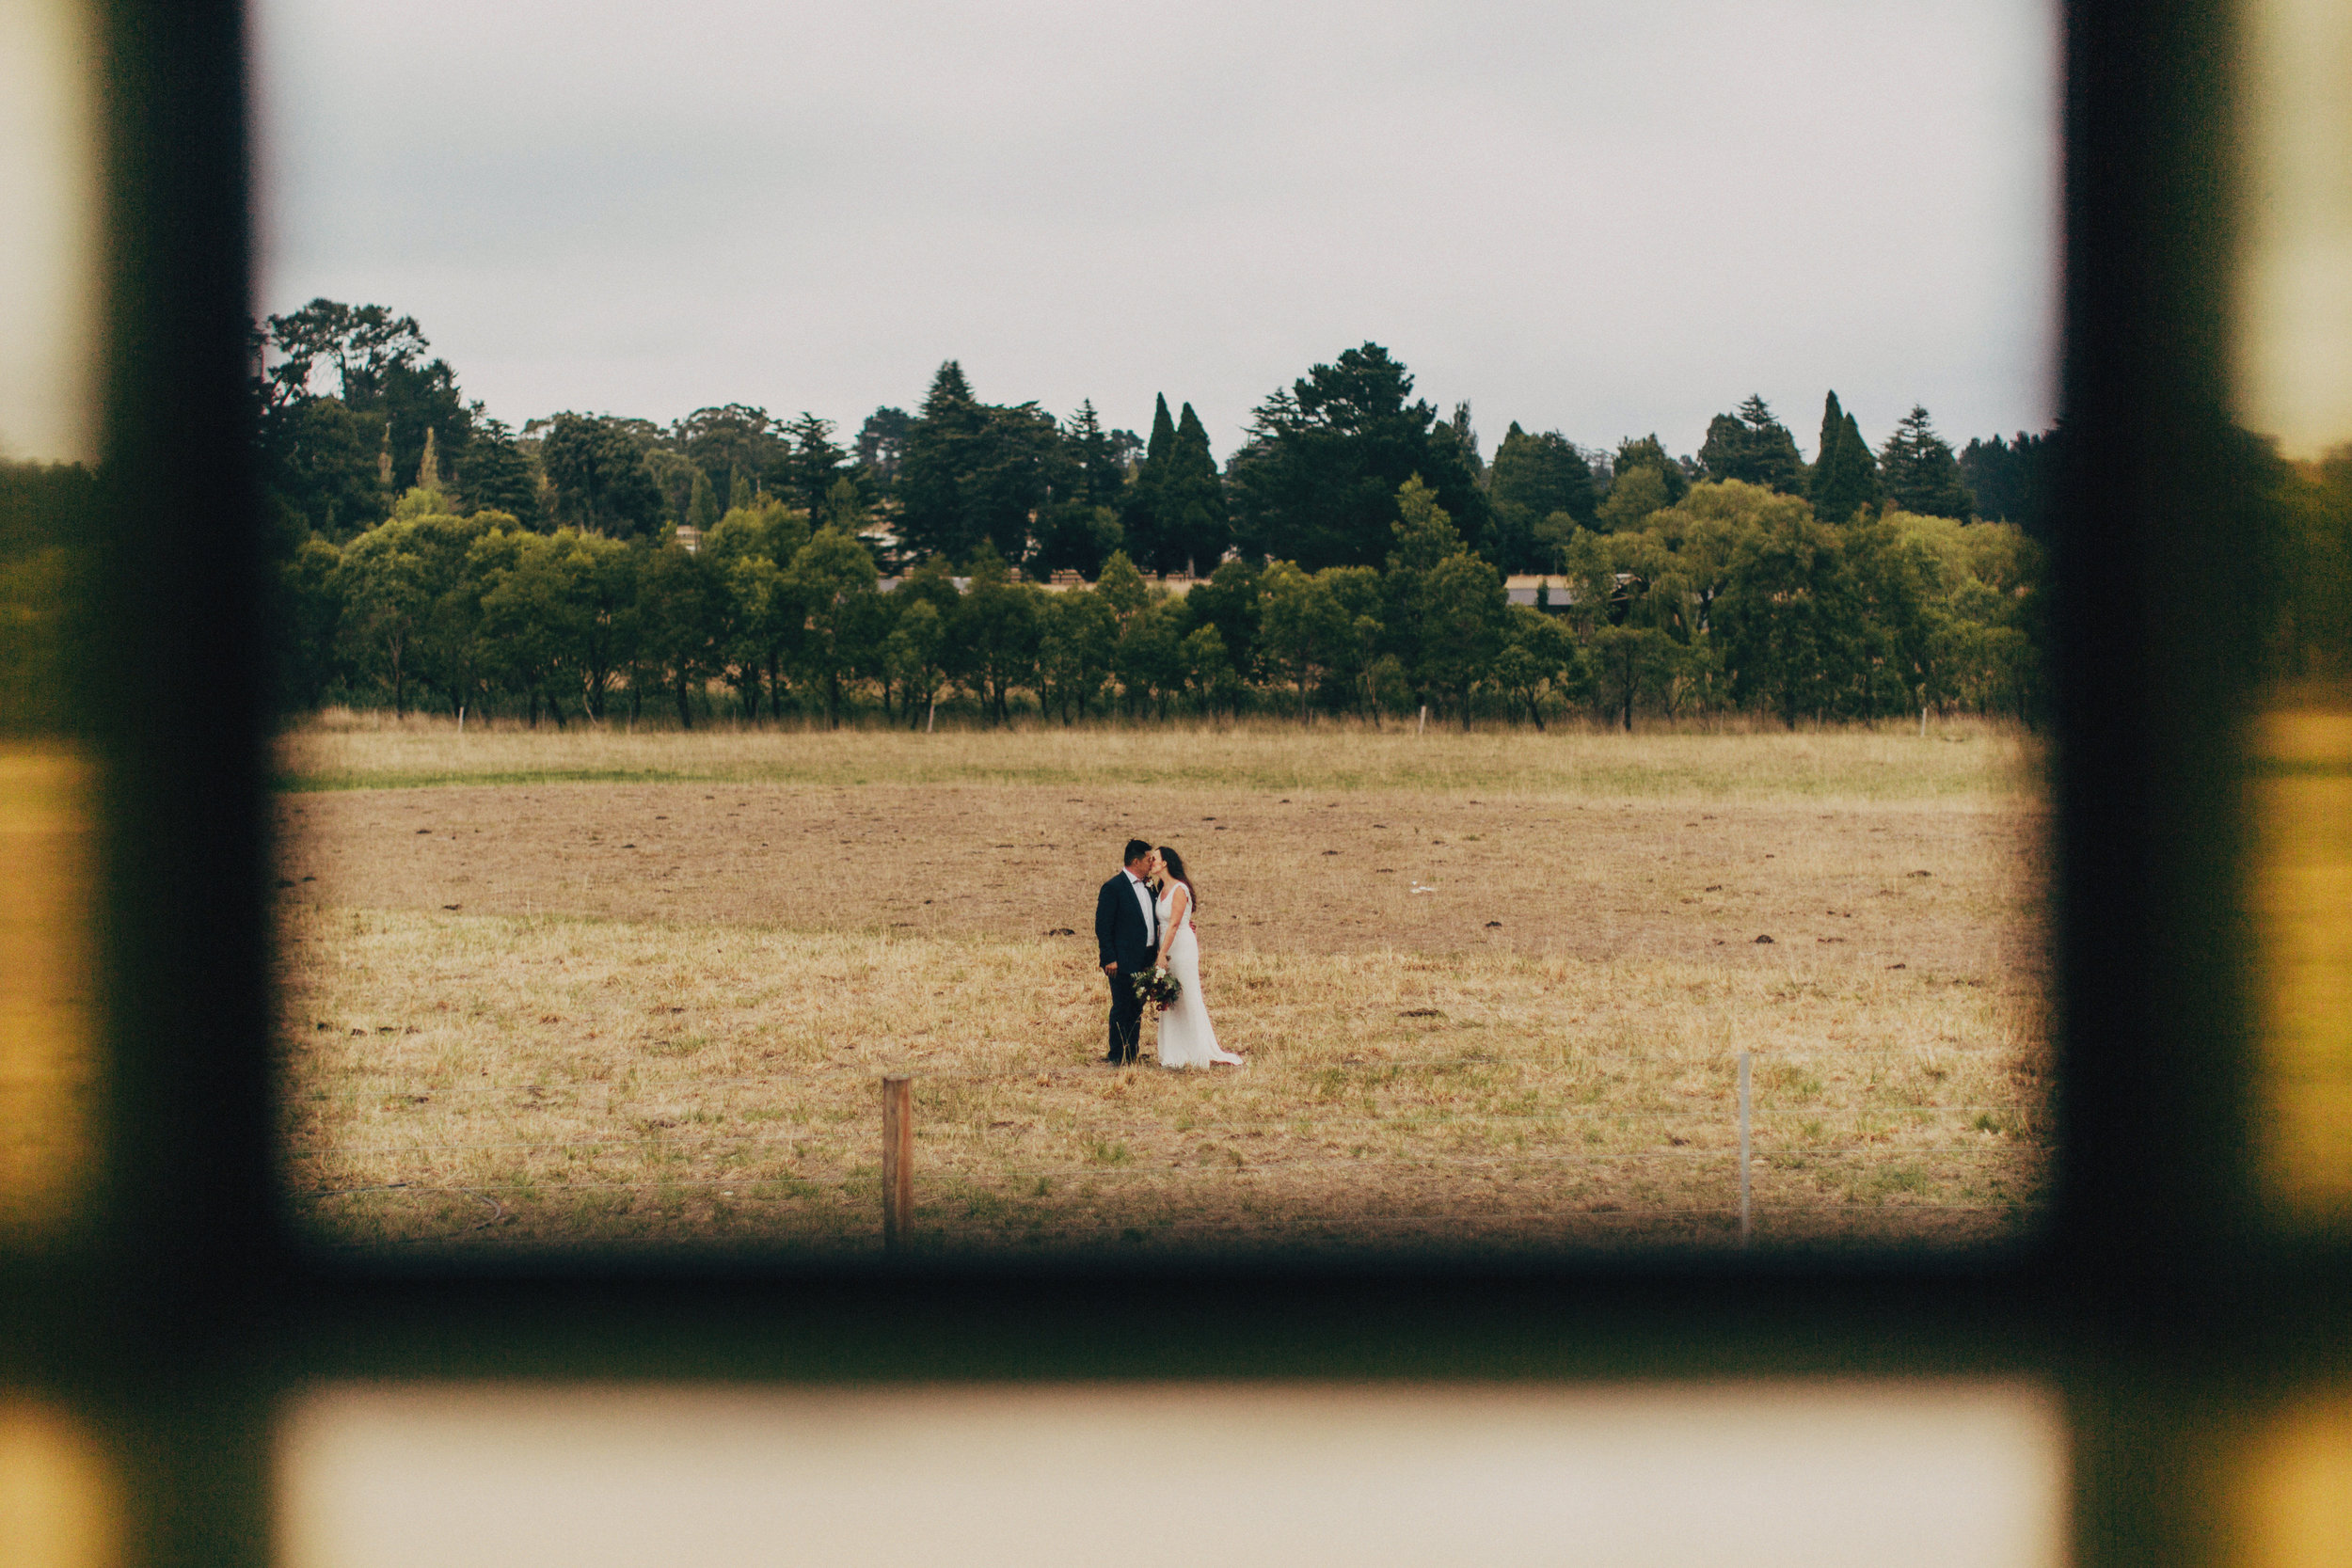 9.3.19Andrew&EwaMarried-0647.JPG